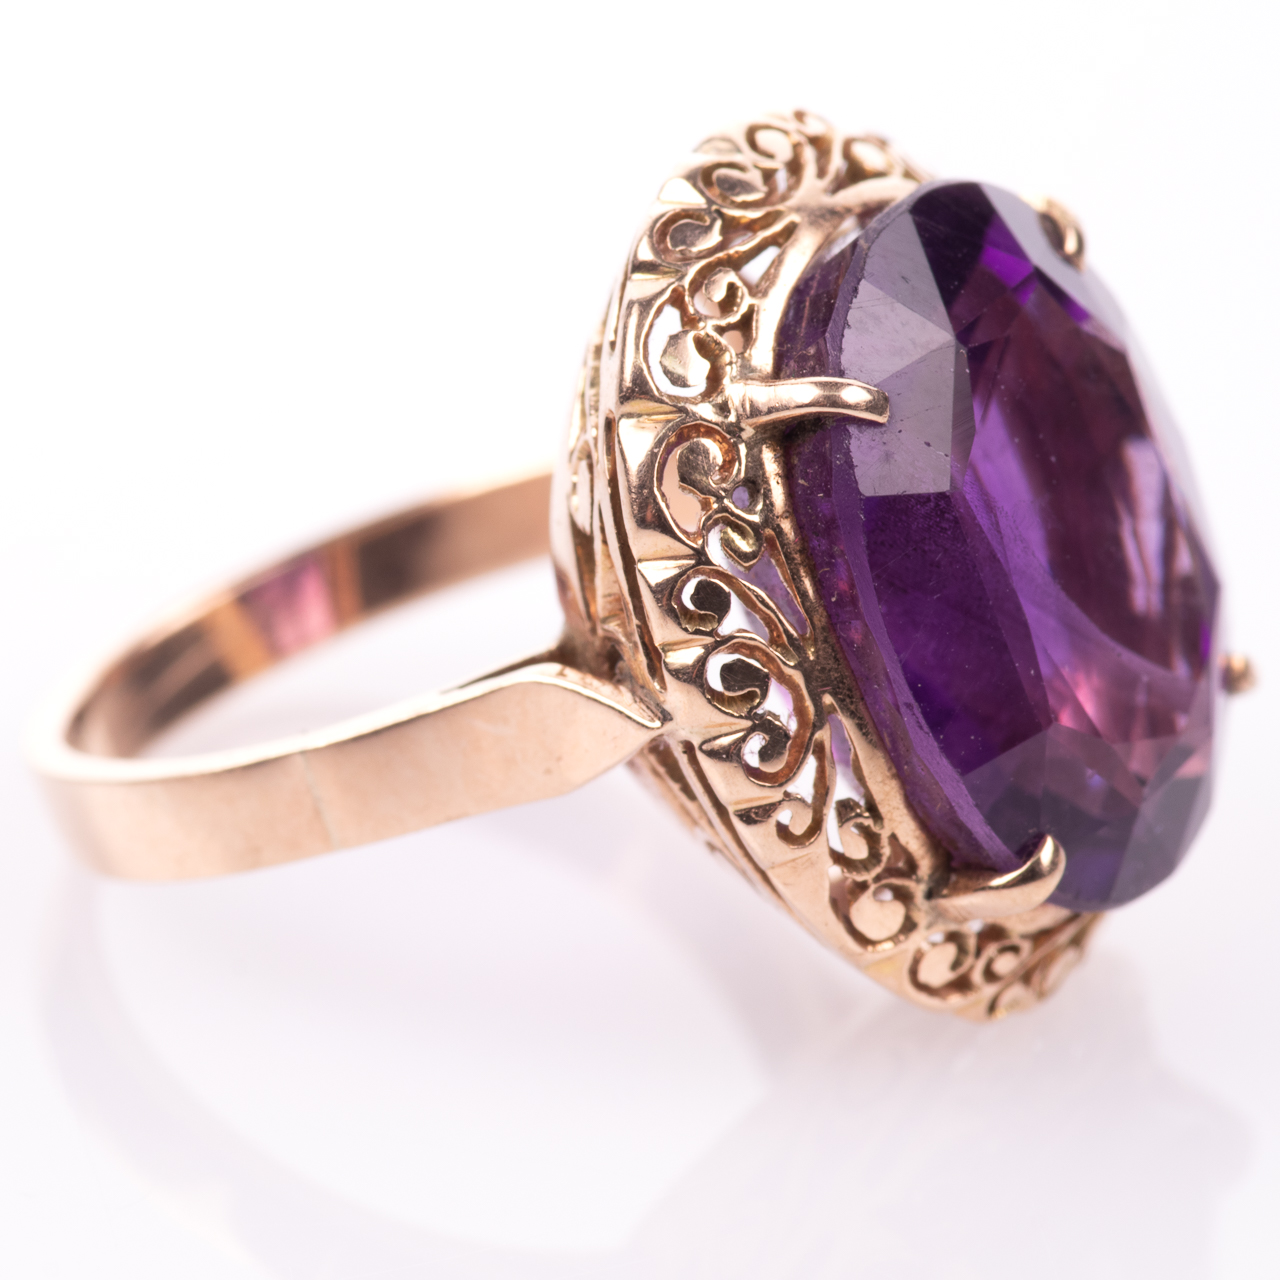 14ct Gold Amethyst Ring - Image 7 of 7